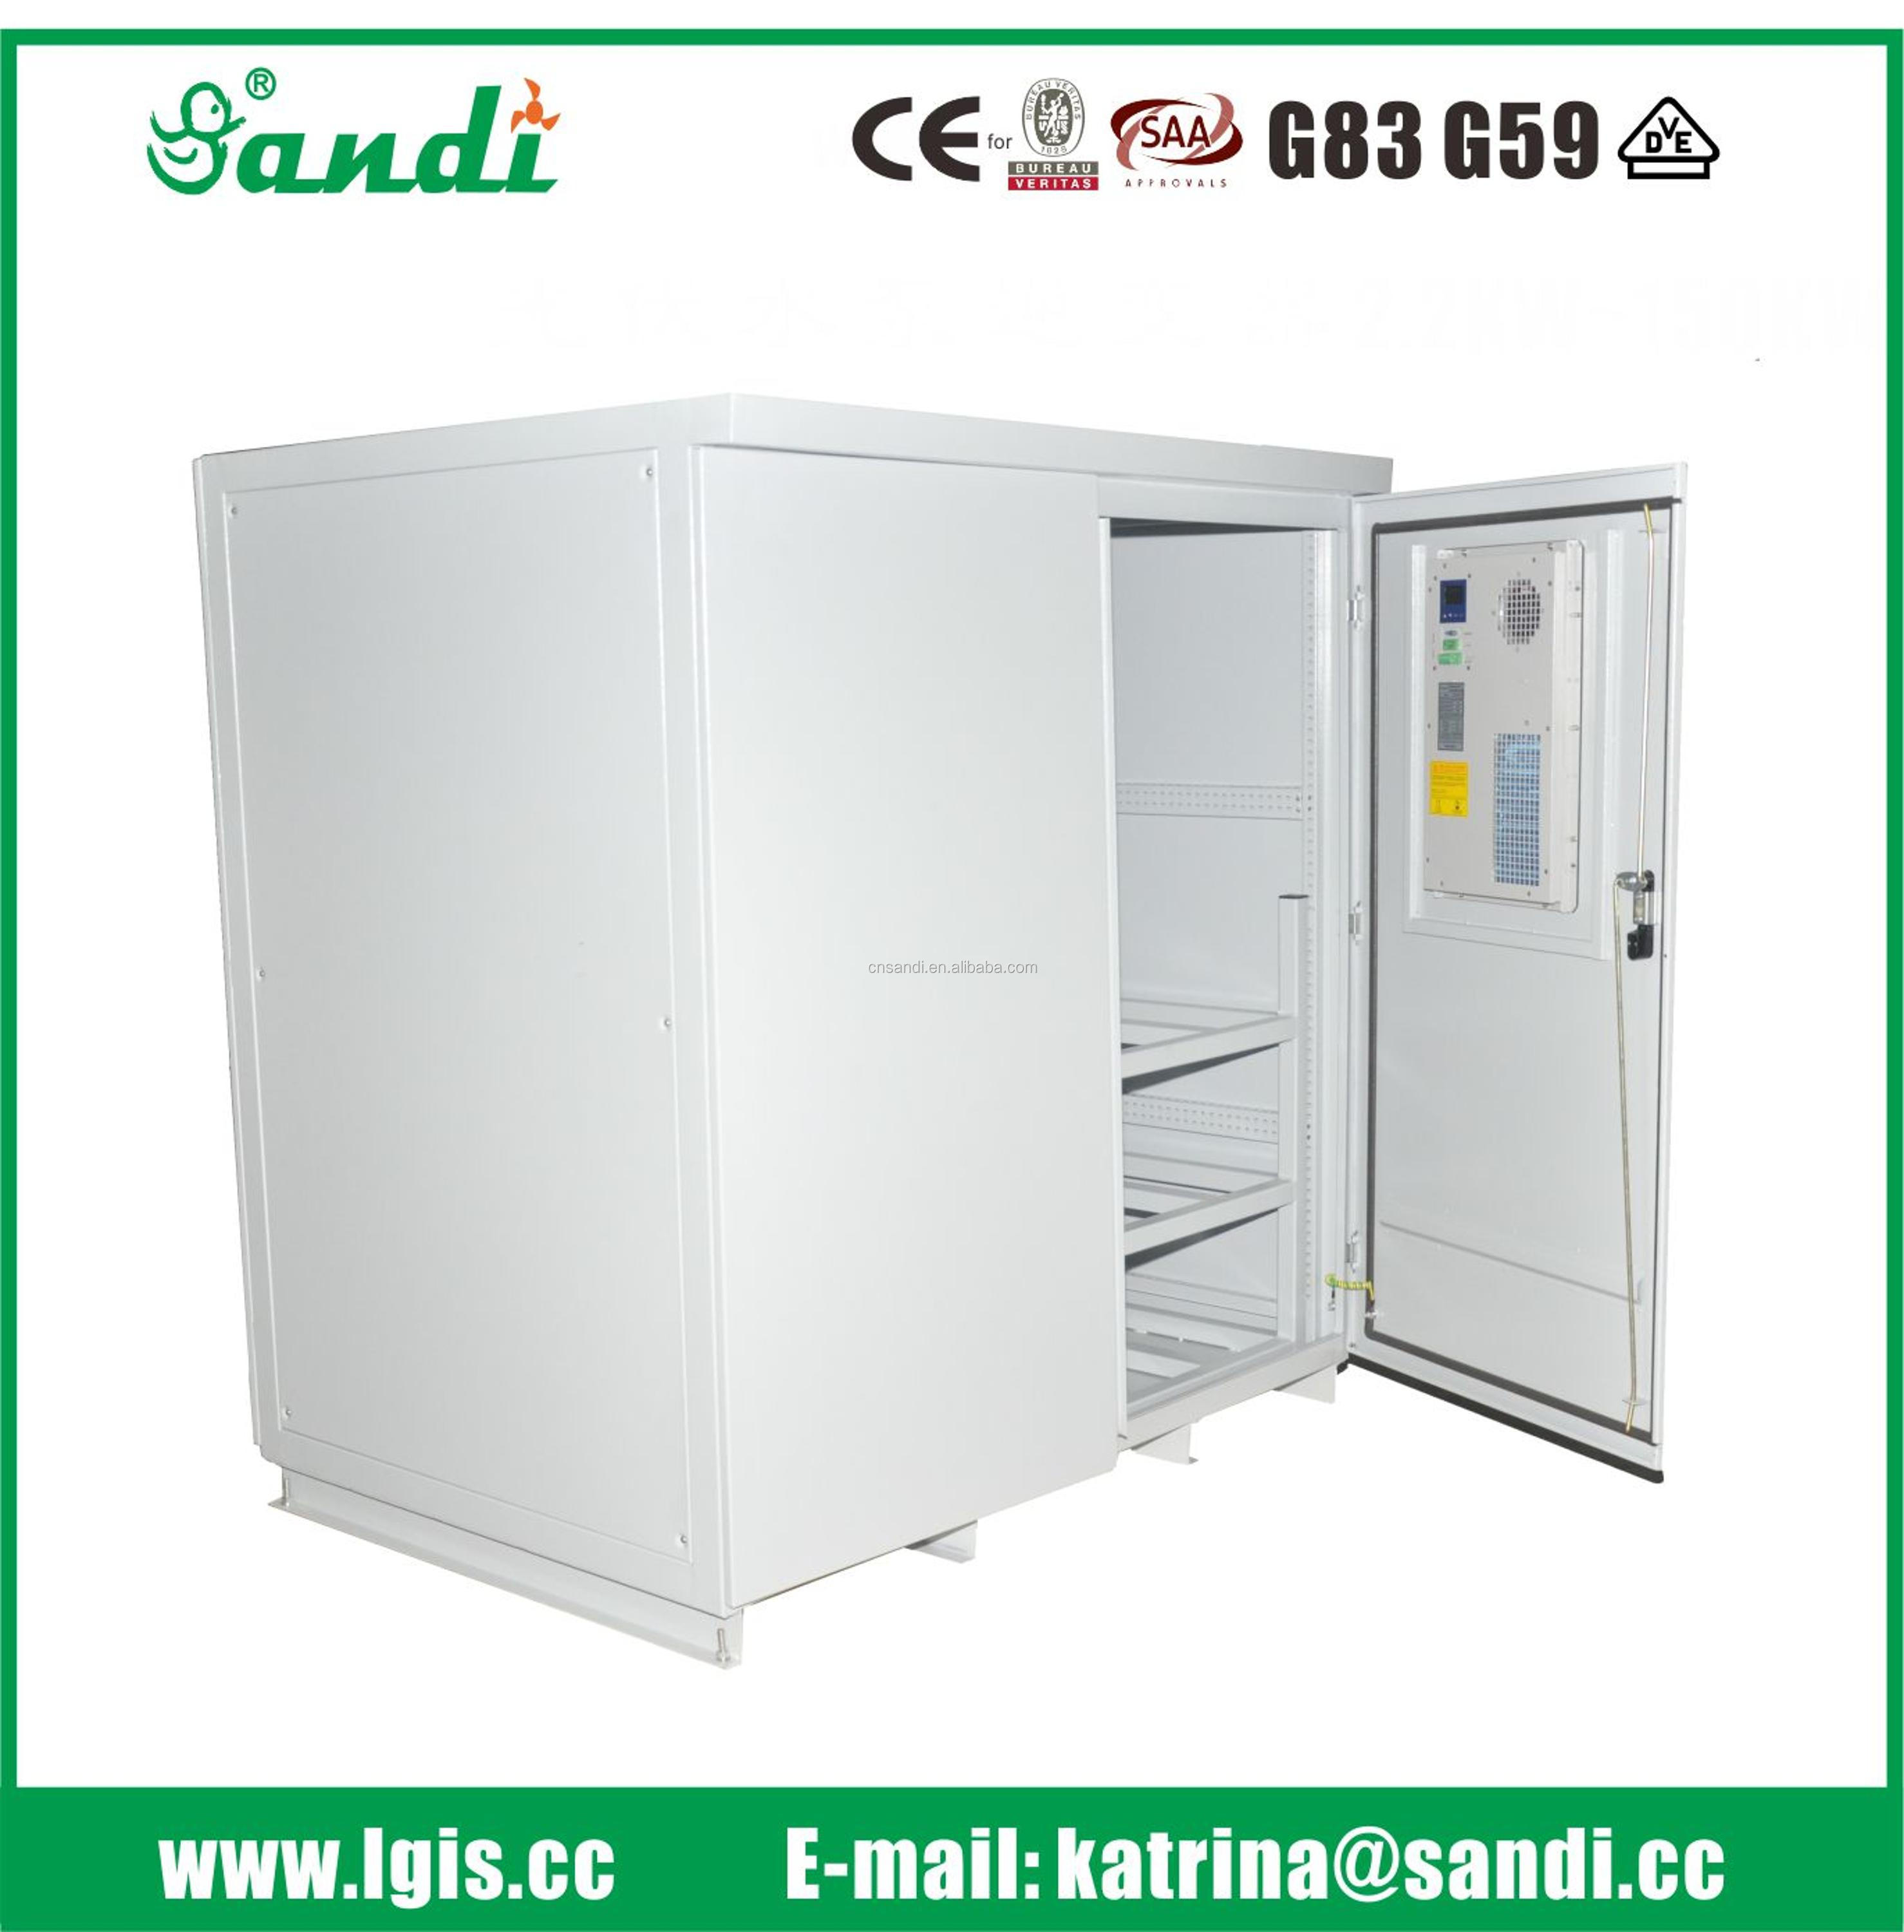 Inverter battery cabinet / Electric Control Cabinet, outdoor cabinet with air conditioner